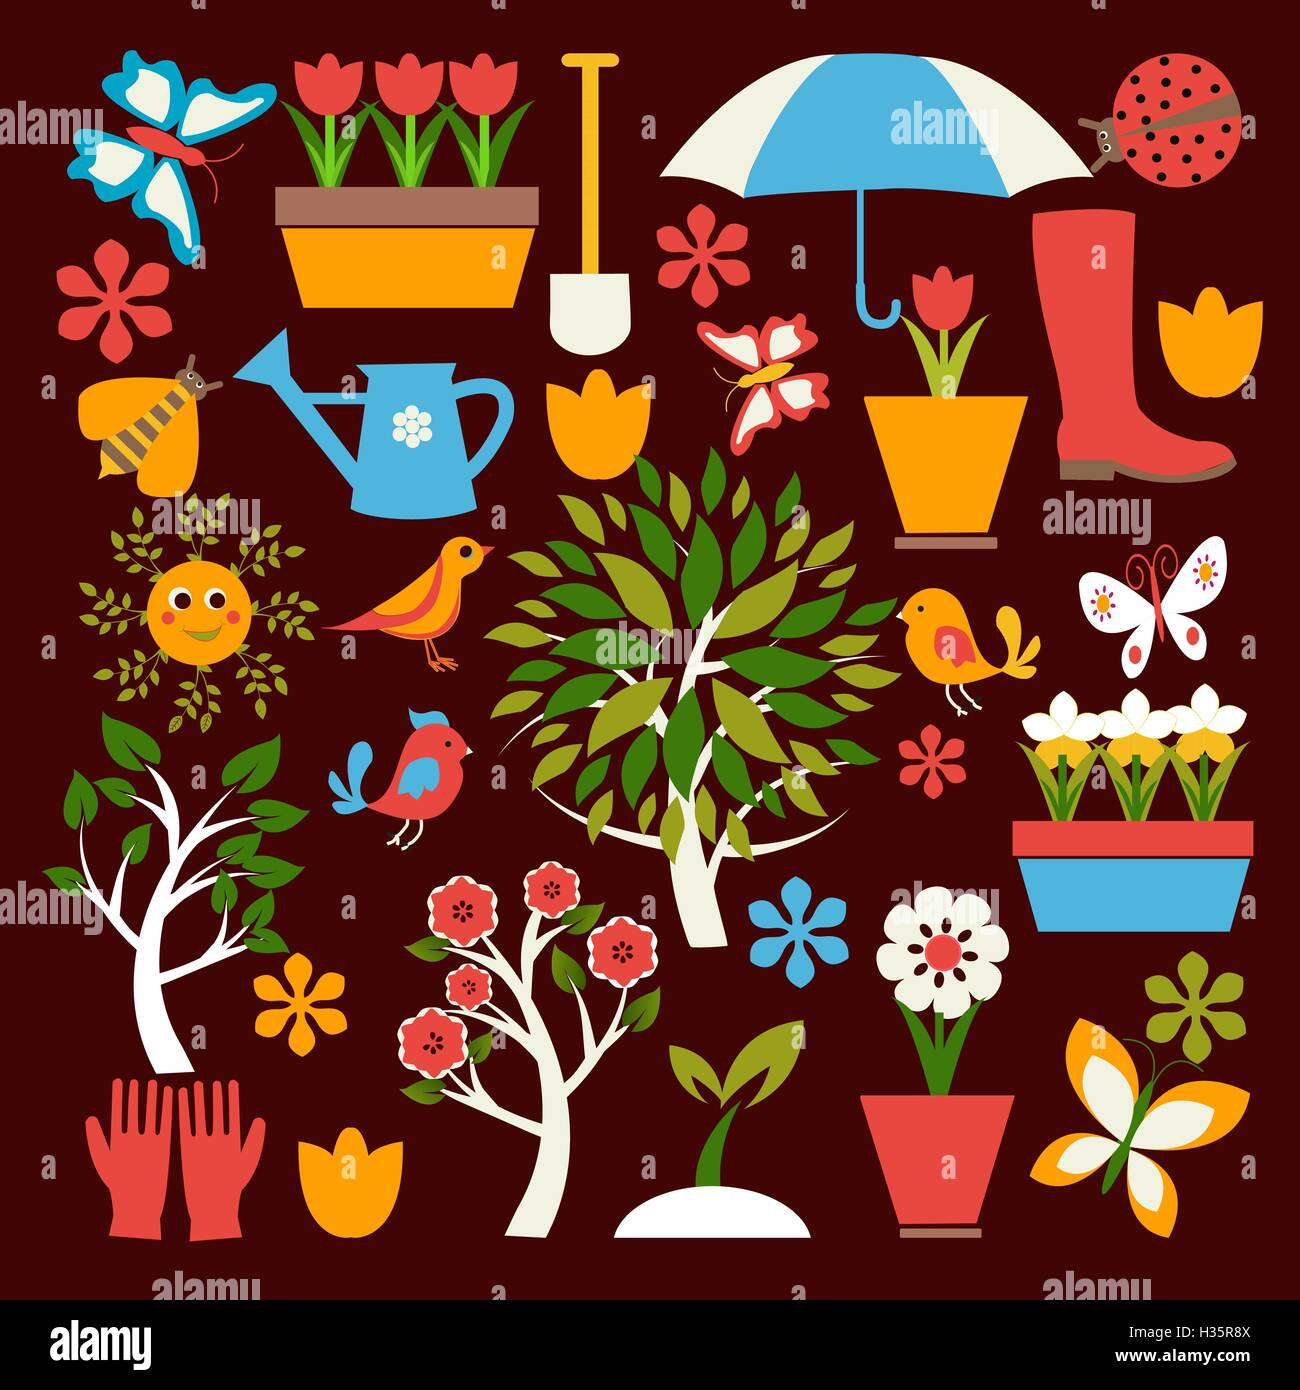 Set icons of gardening and spring related items Stock Vector Image